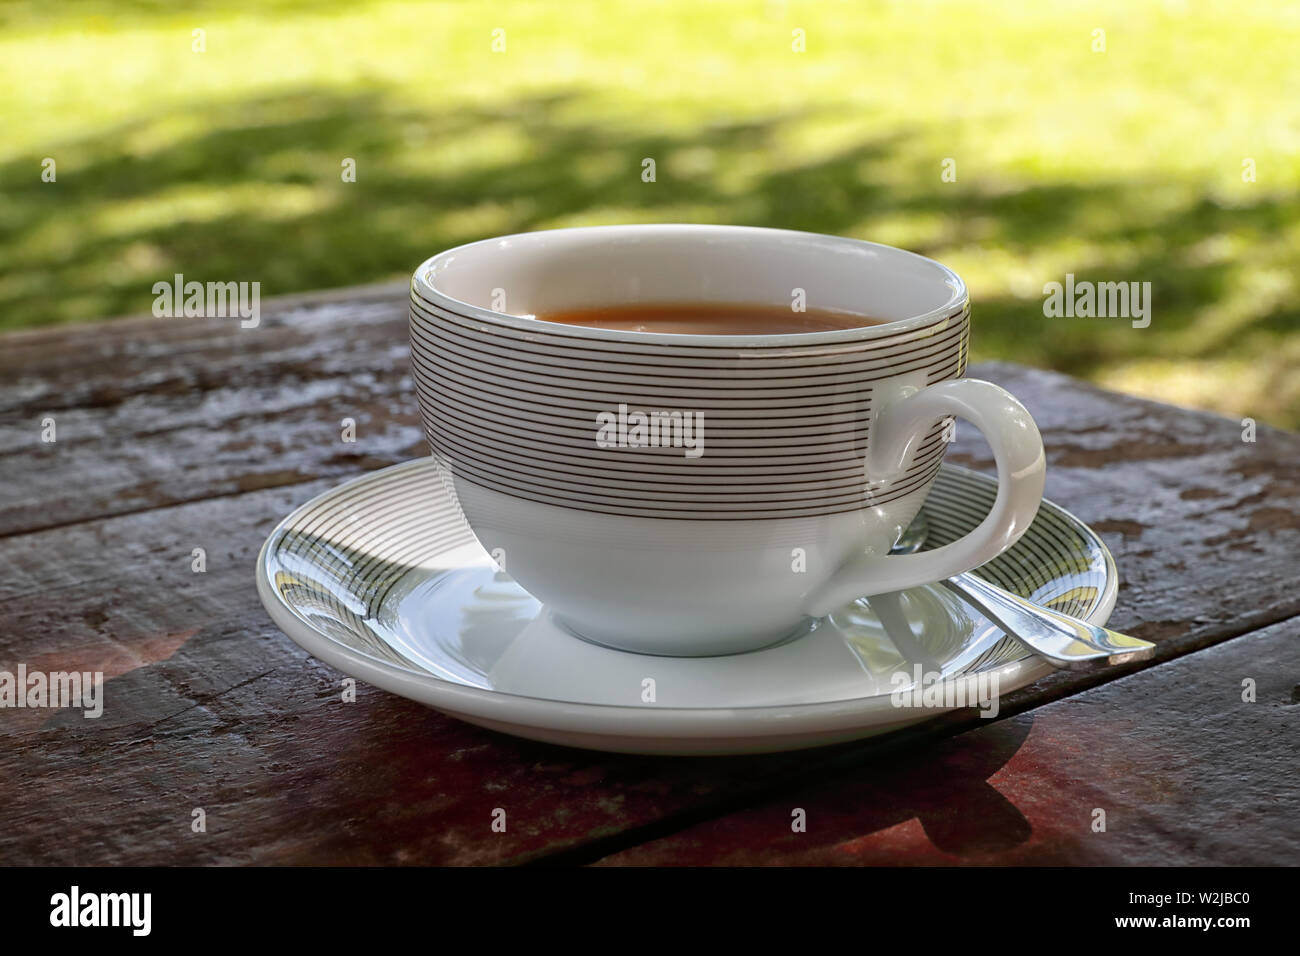 A nice refreshing cup of tea outdoors in summer - Stock Image